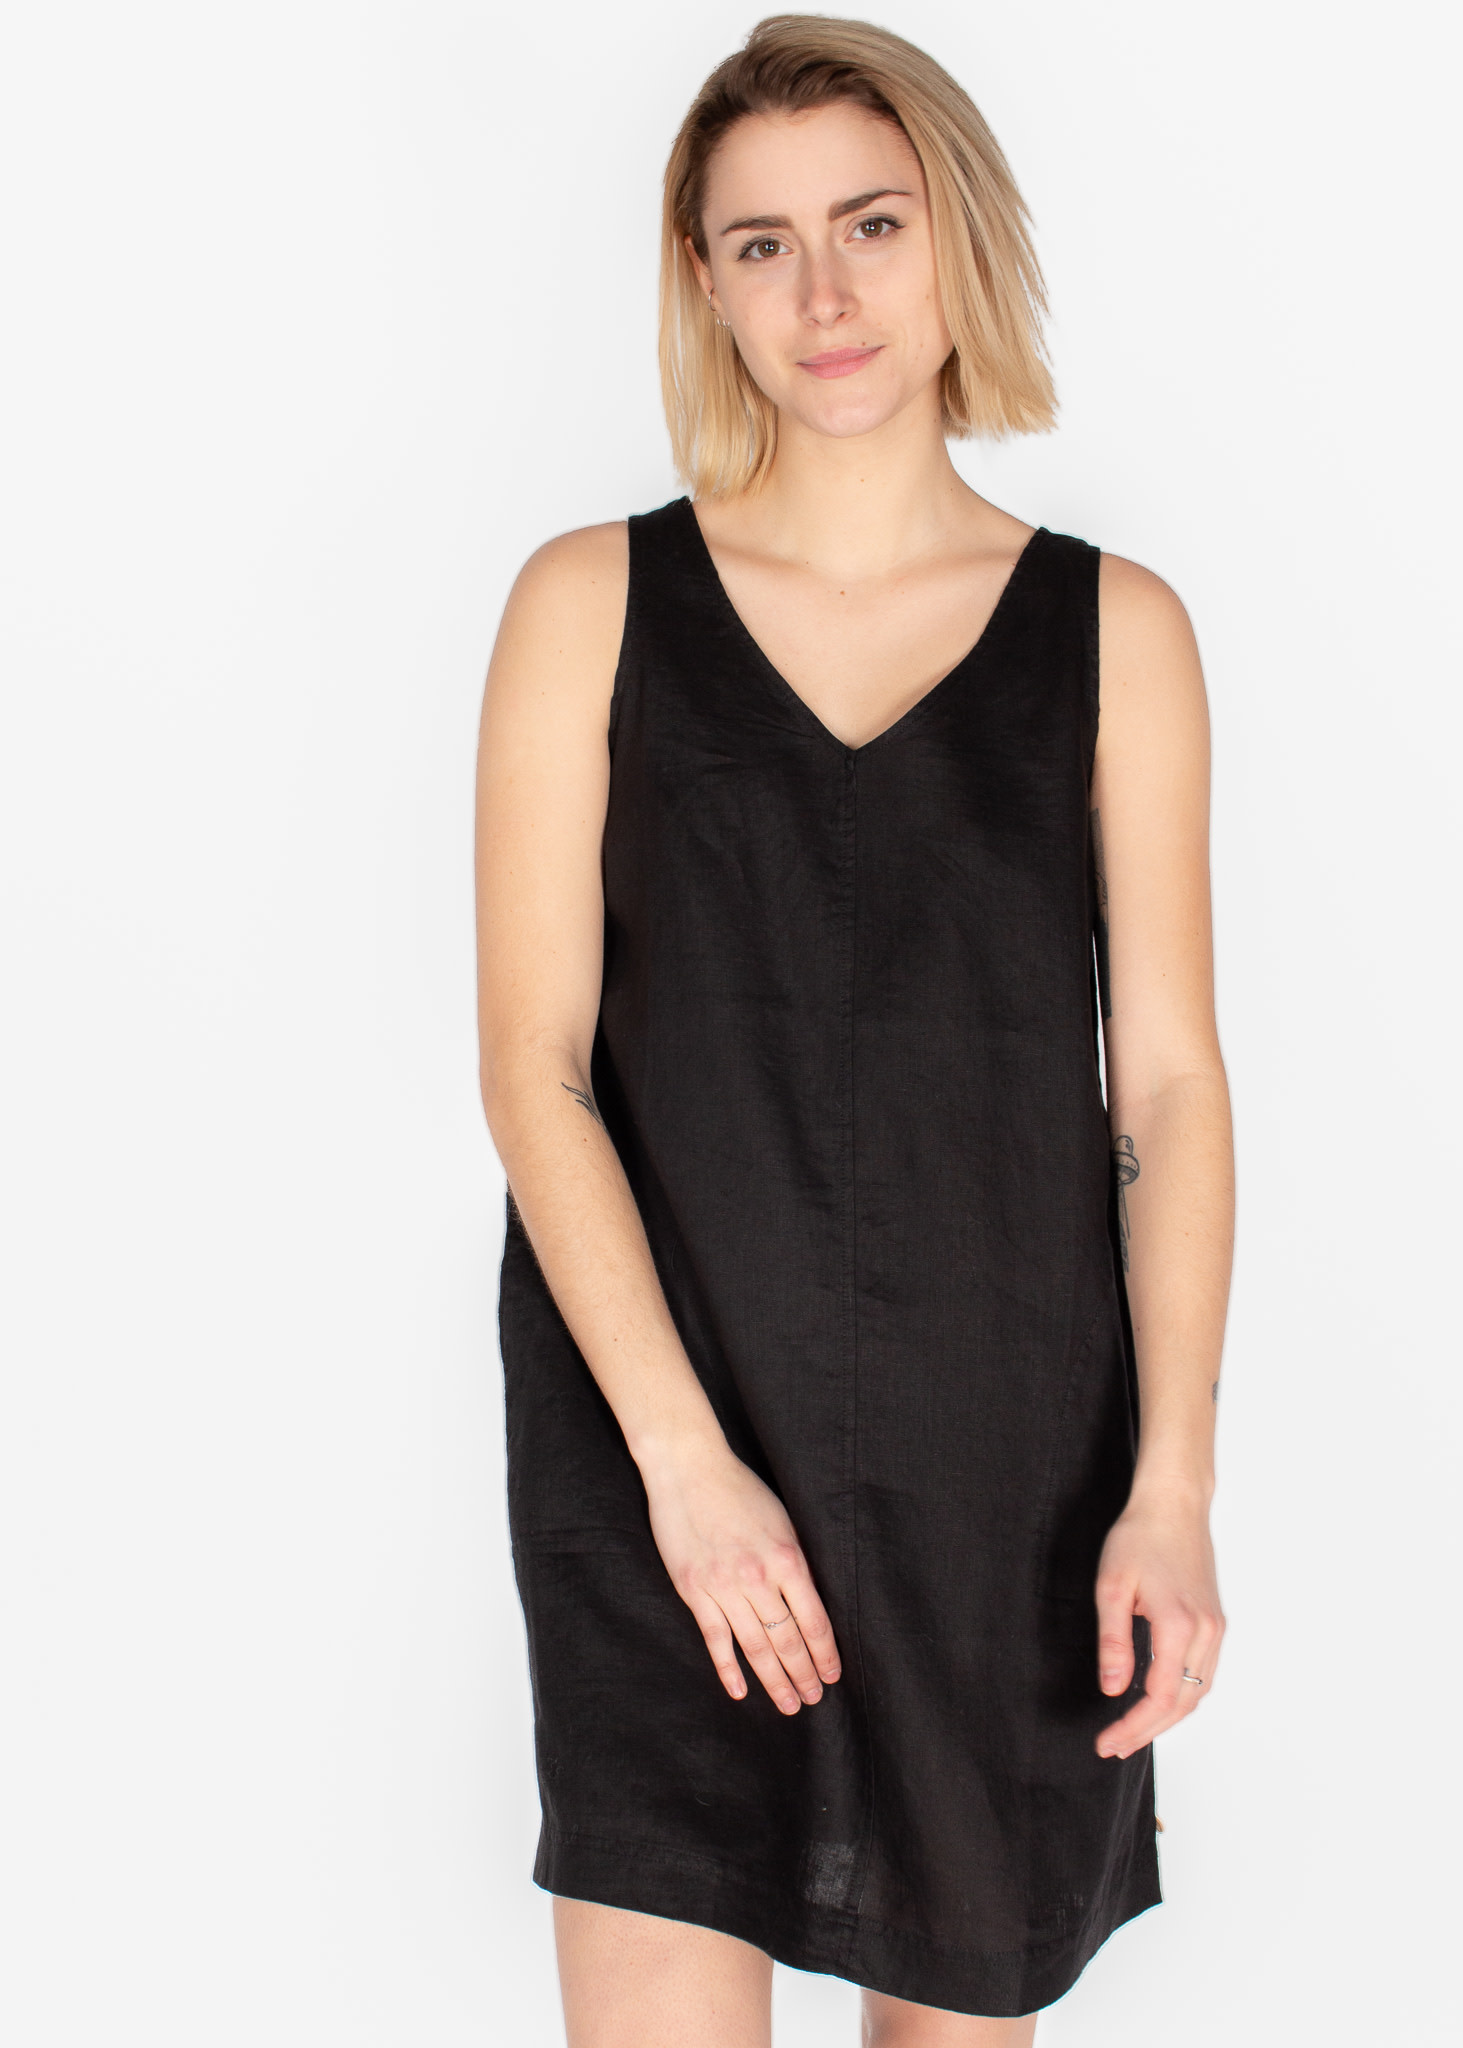 YERSE ORGANIC LINEN STRAPPY DRESS